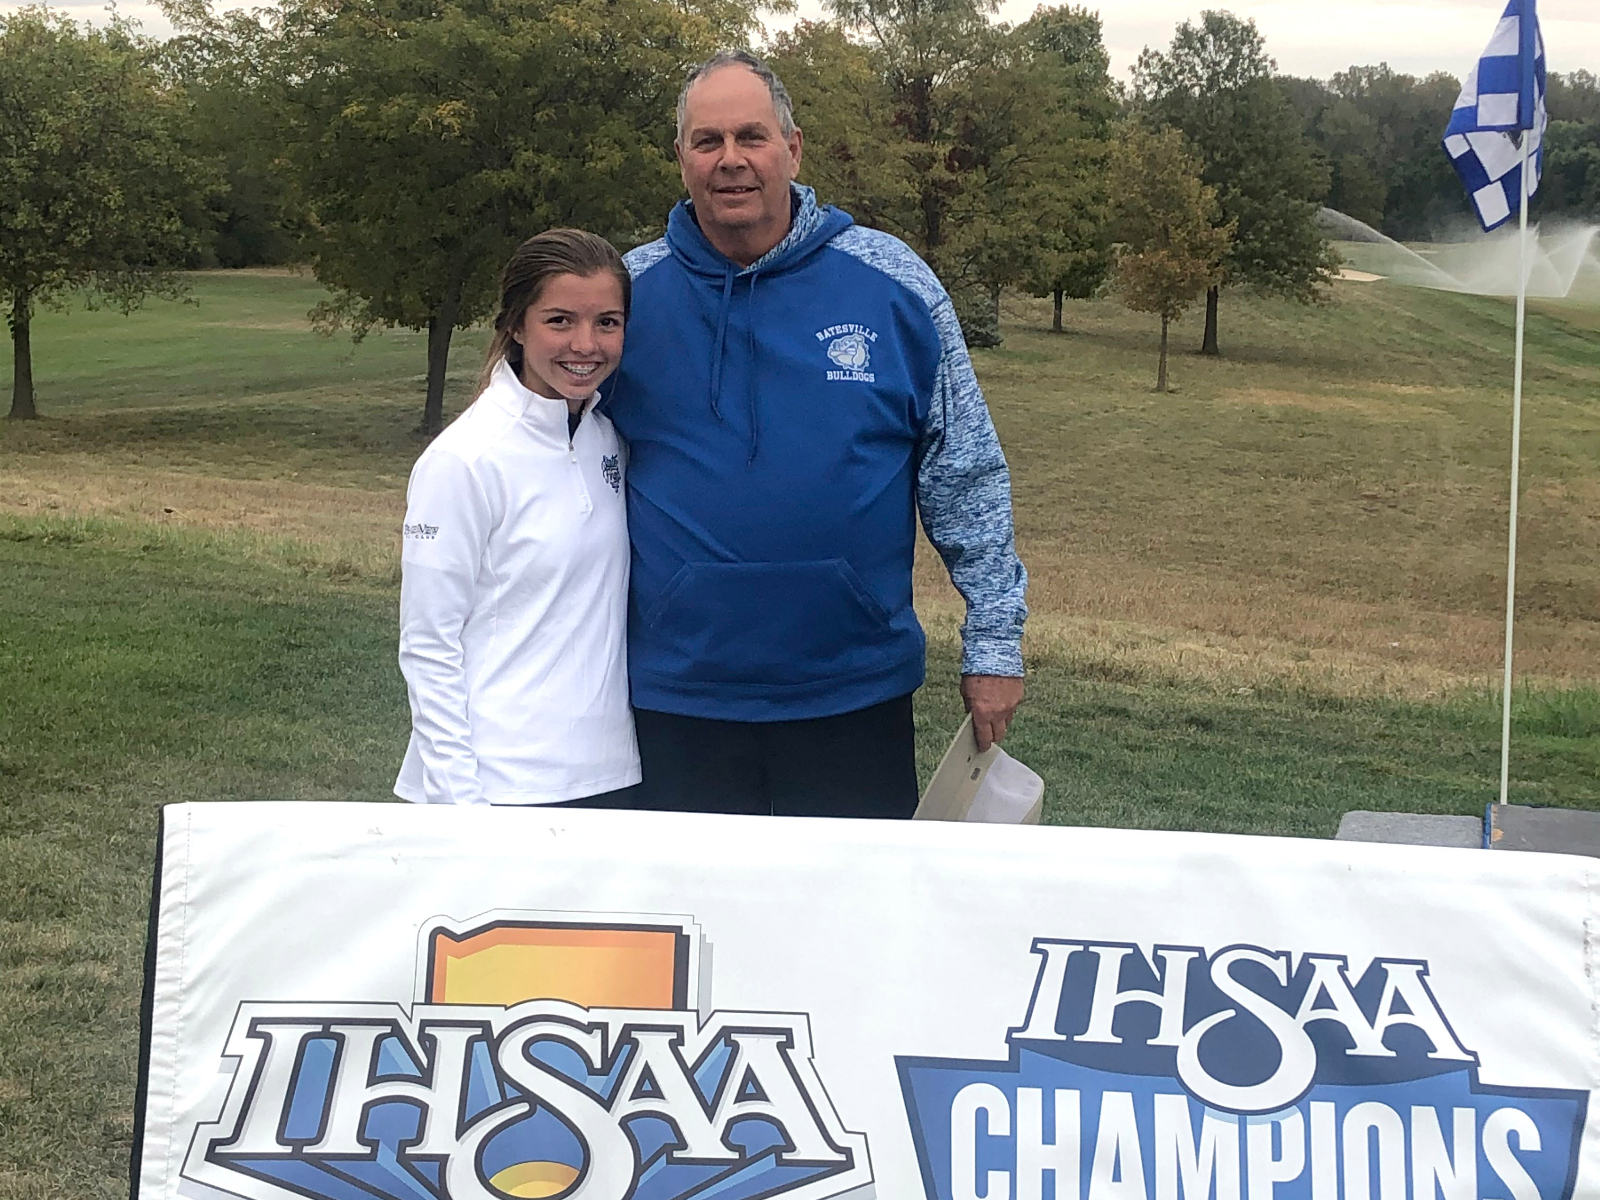 Weiler places tied for 11th at IHSAA State Finals